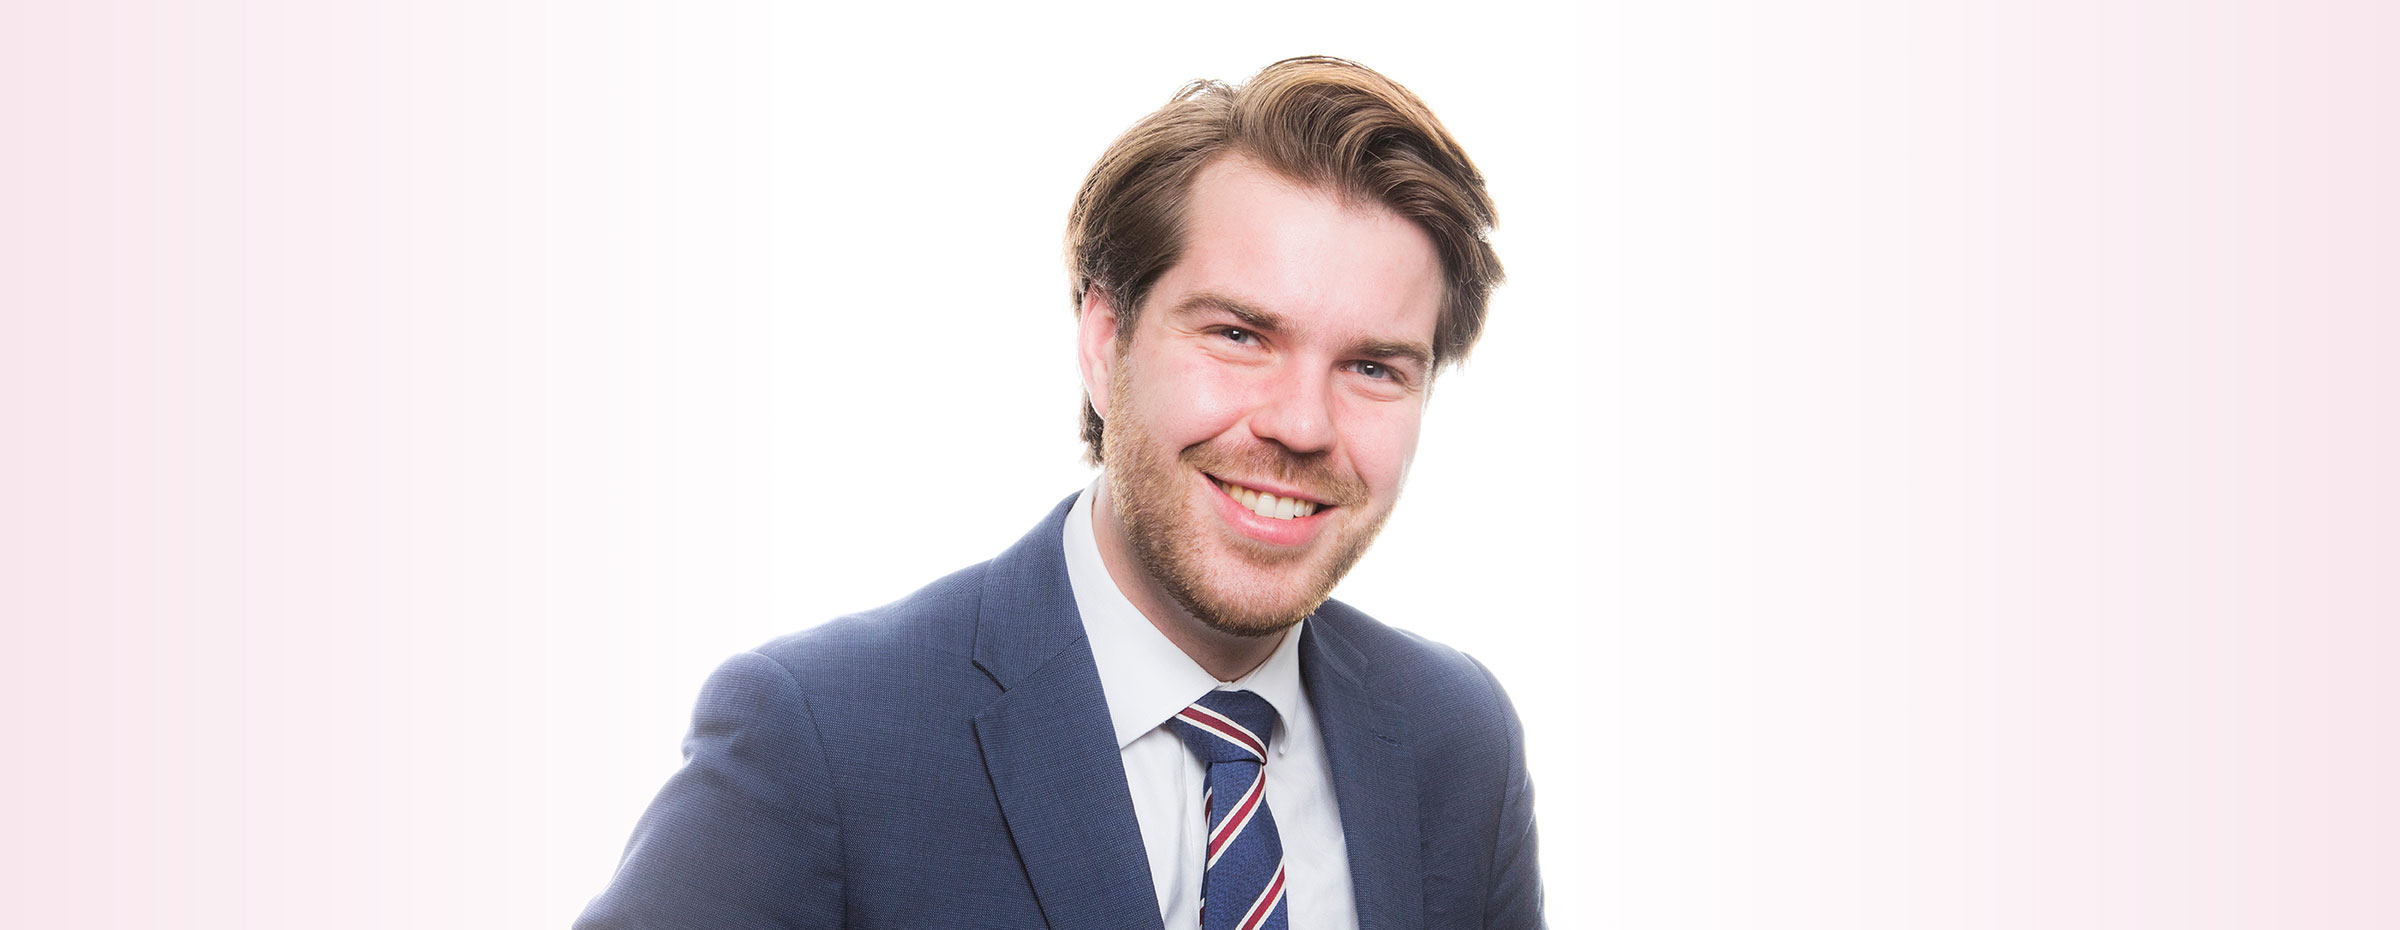 clive hogan associate family solicitor profile pic